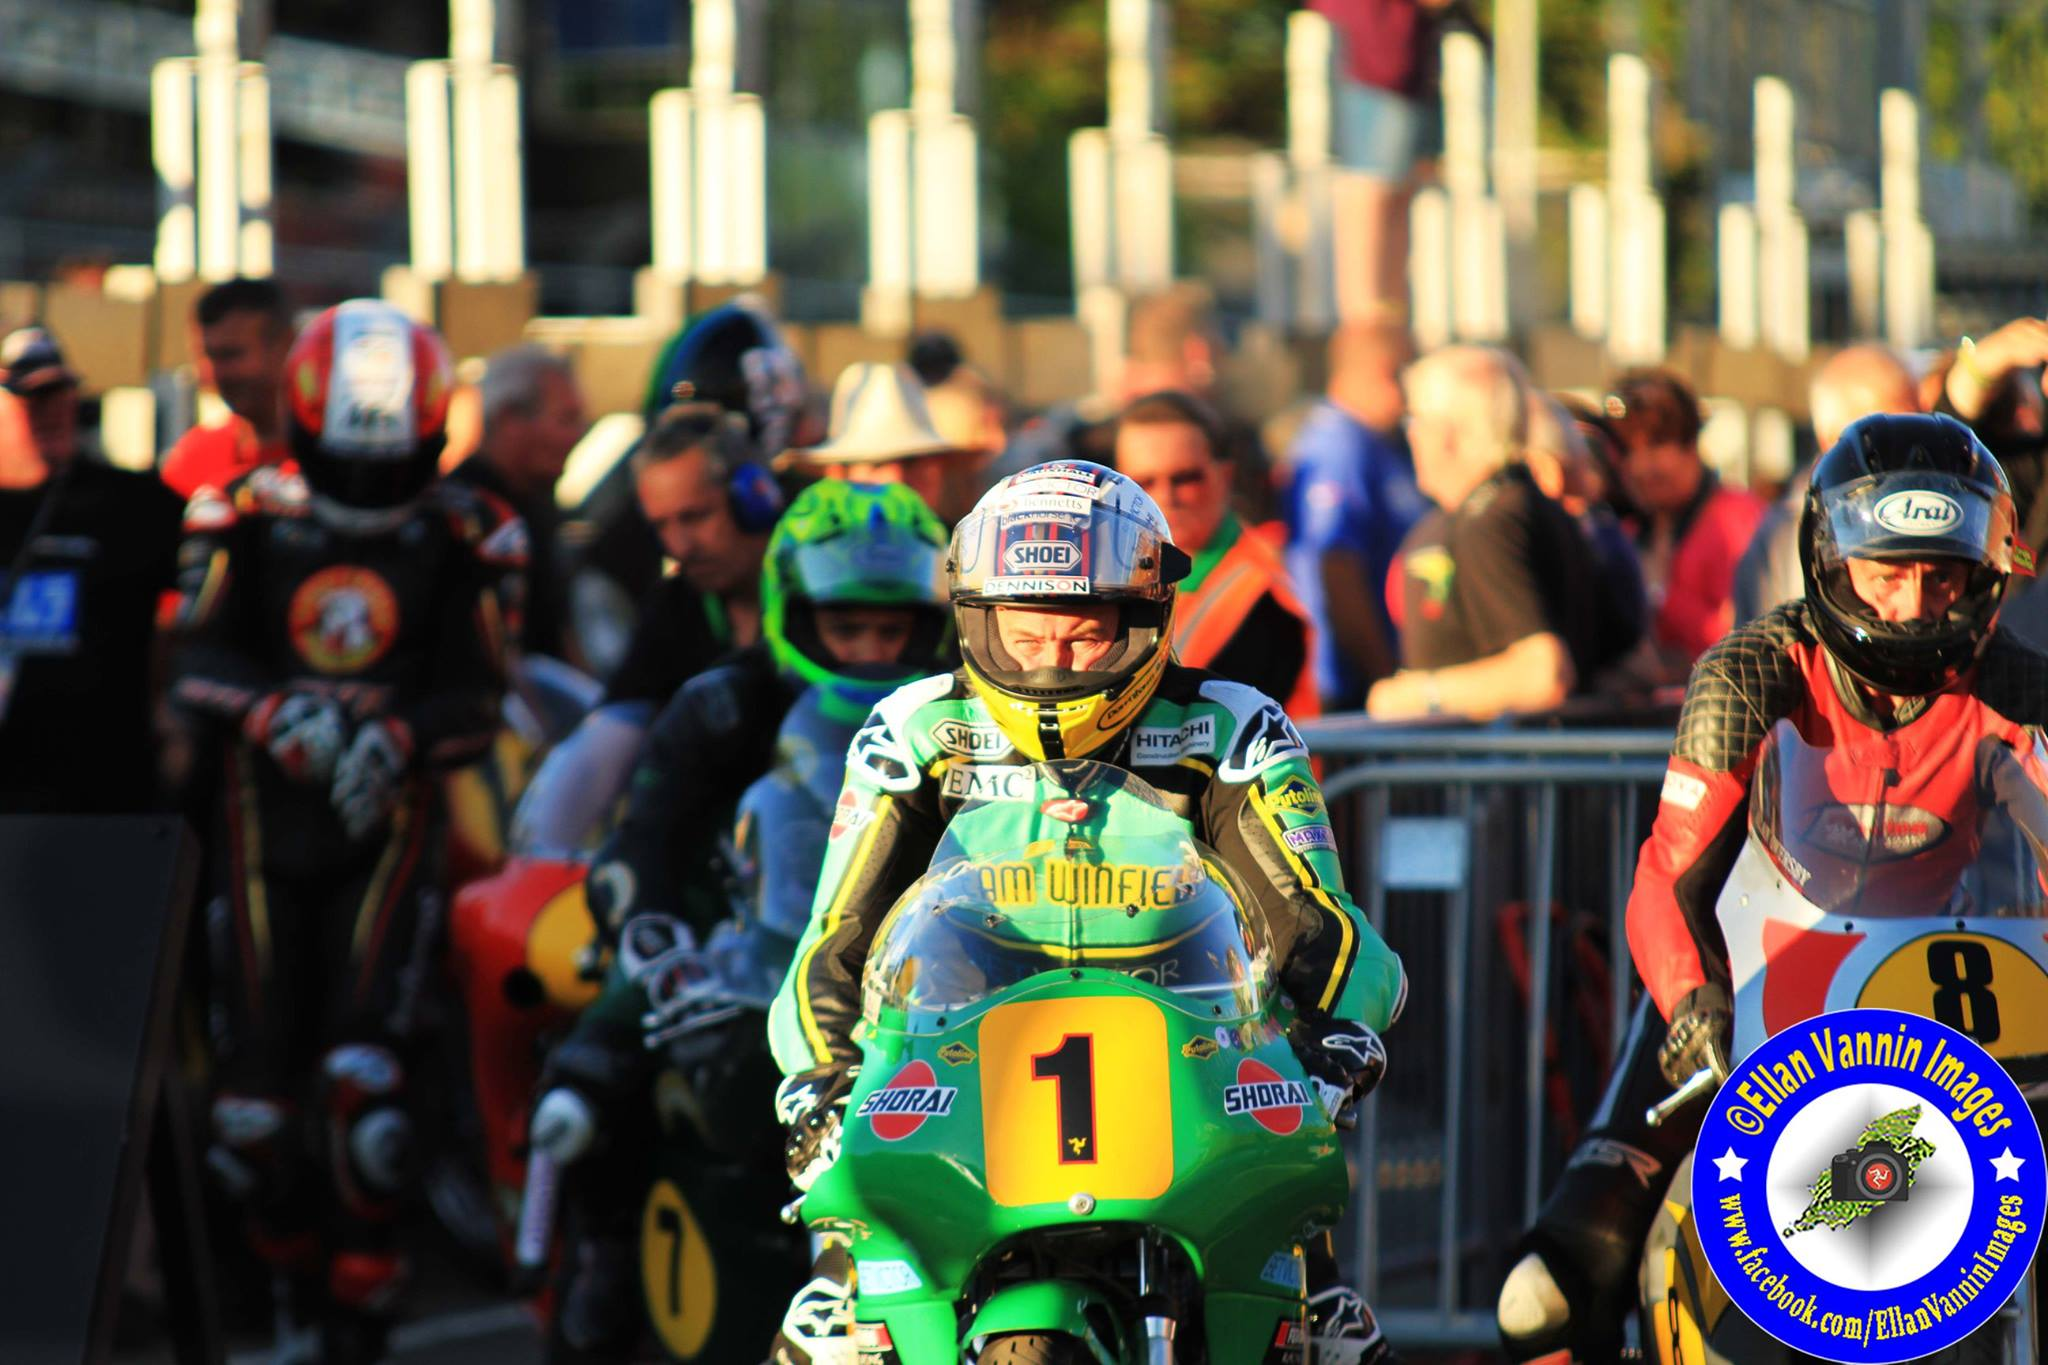 McGuinness Reunited With Team Winfield Paton For 2018 Senior Classic TT